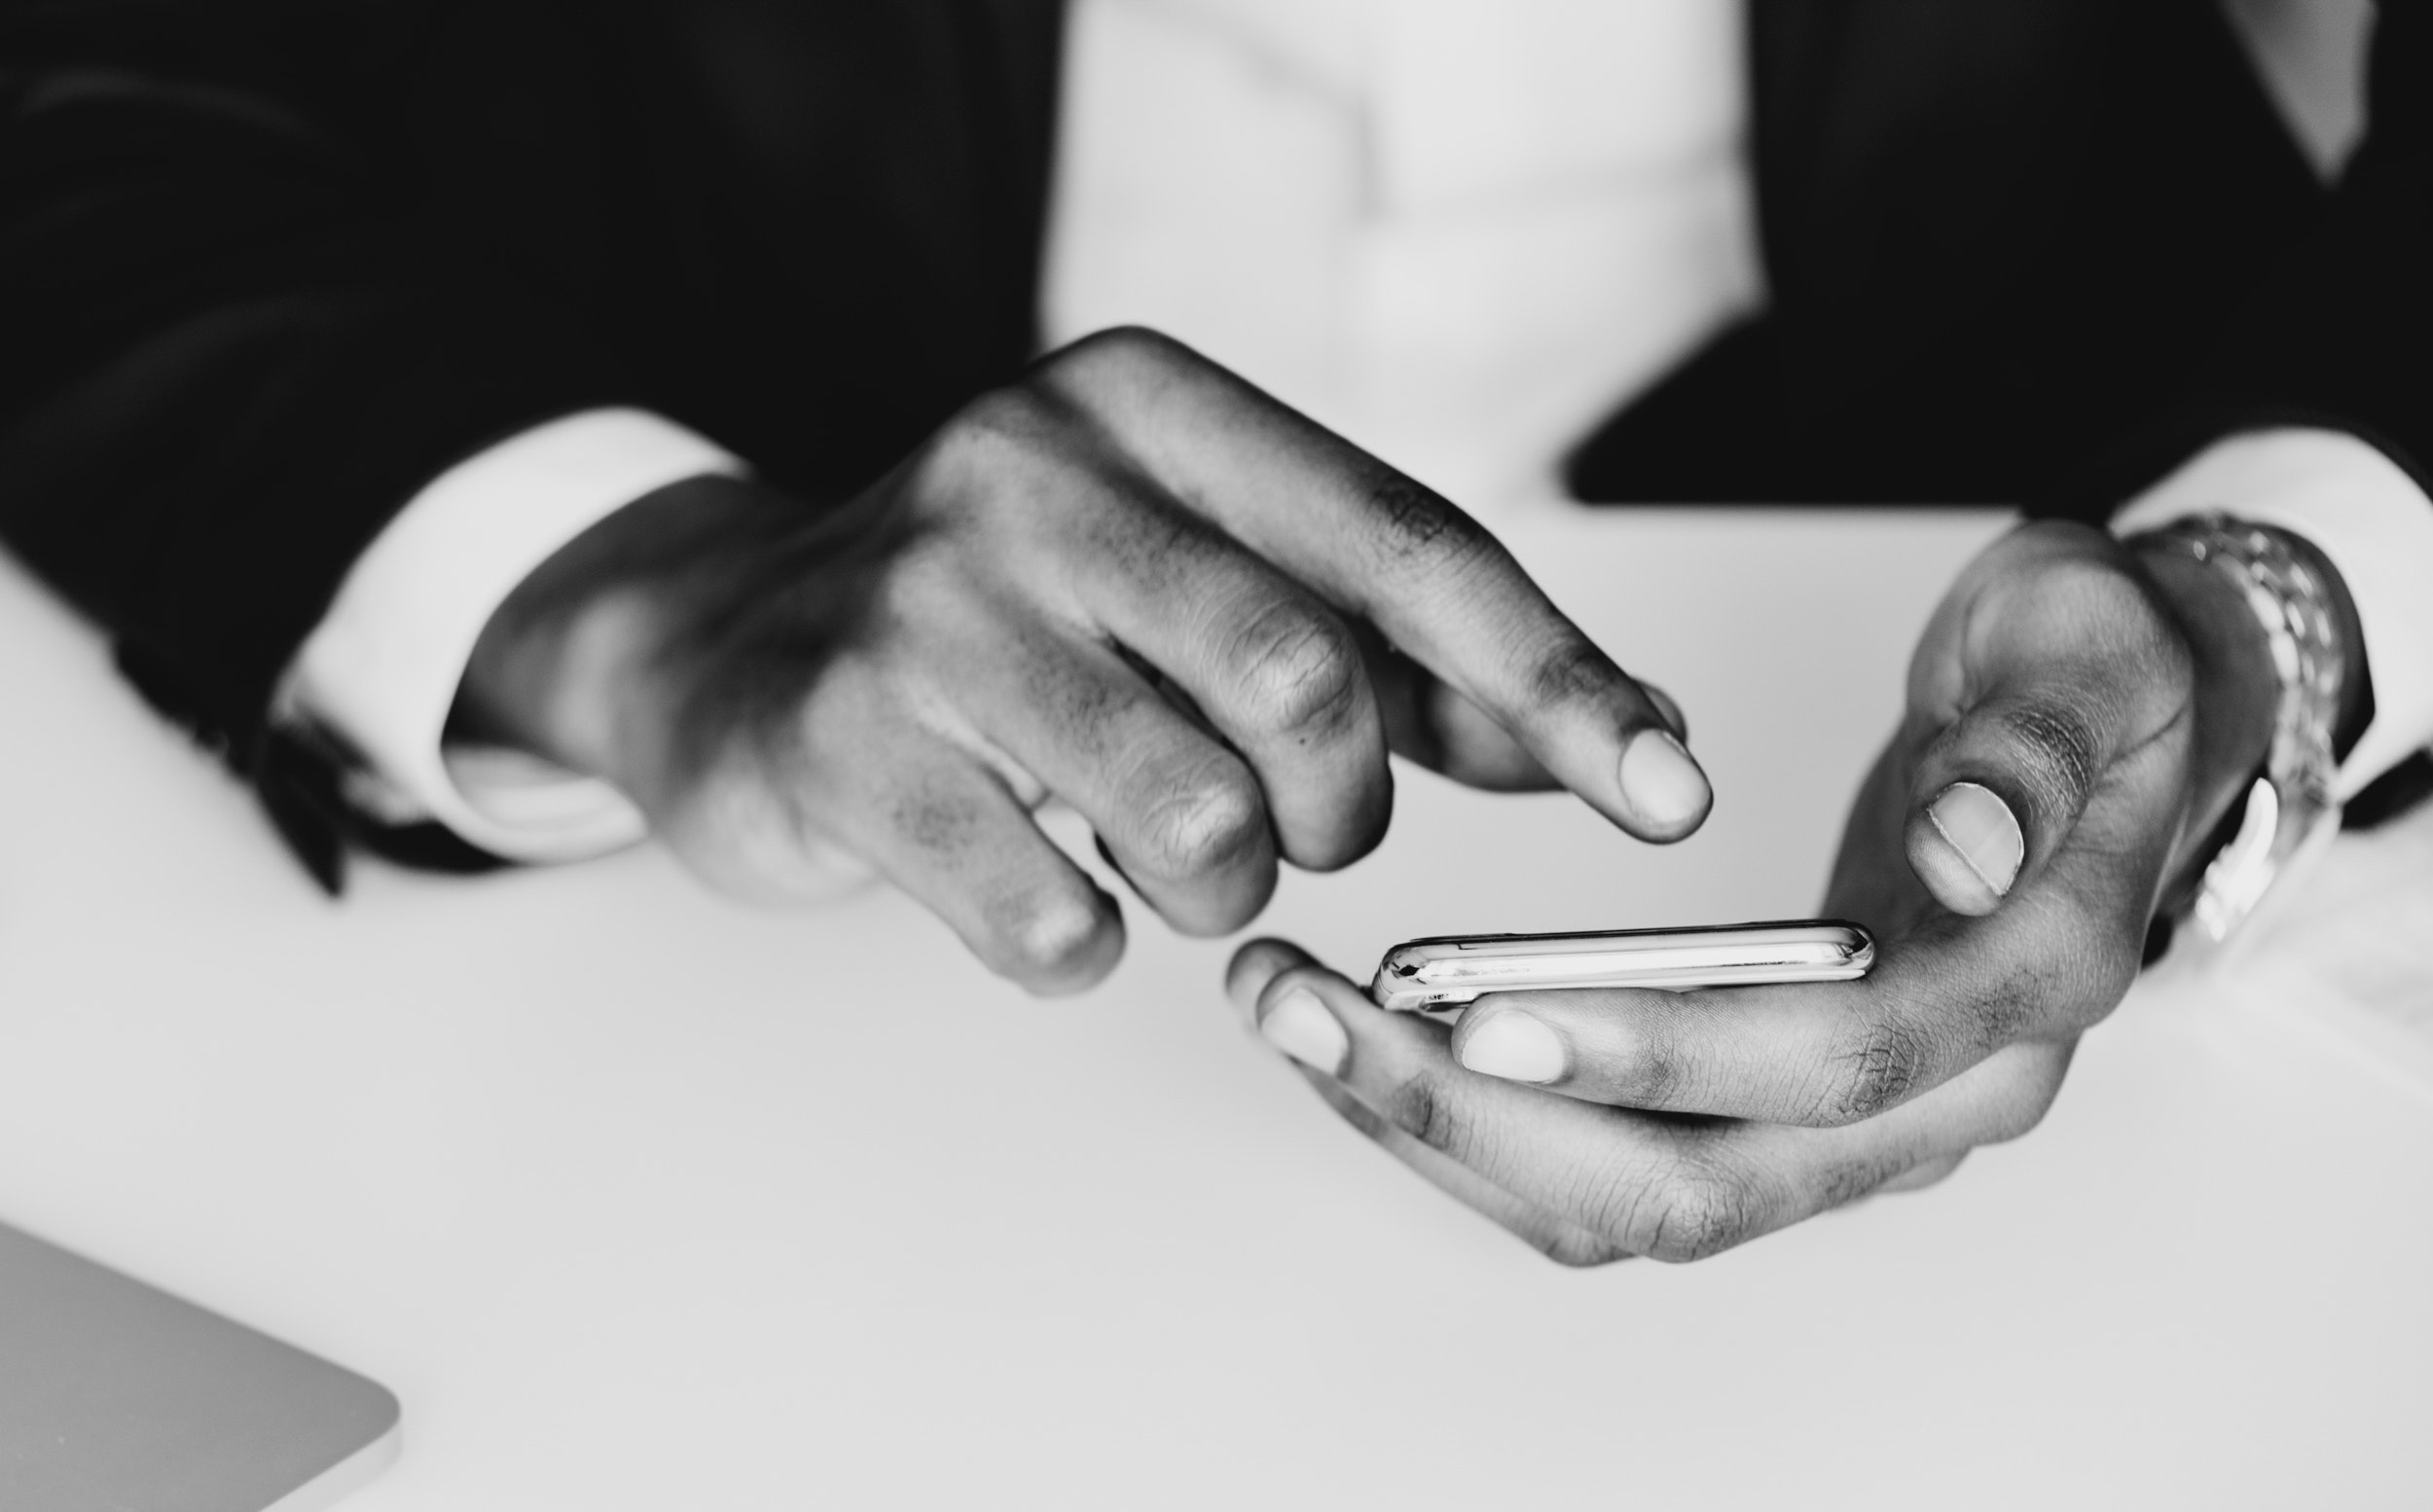 Monochrome Photography of a Person Using Mobile Phone, Black-and-white, Man, Smartphone, Phone, HQ Photo